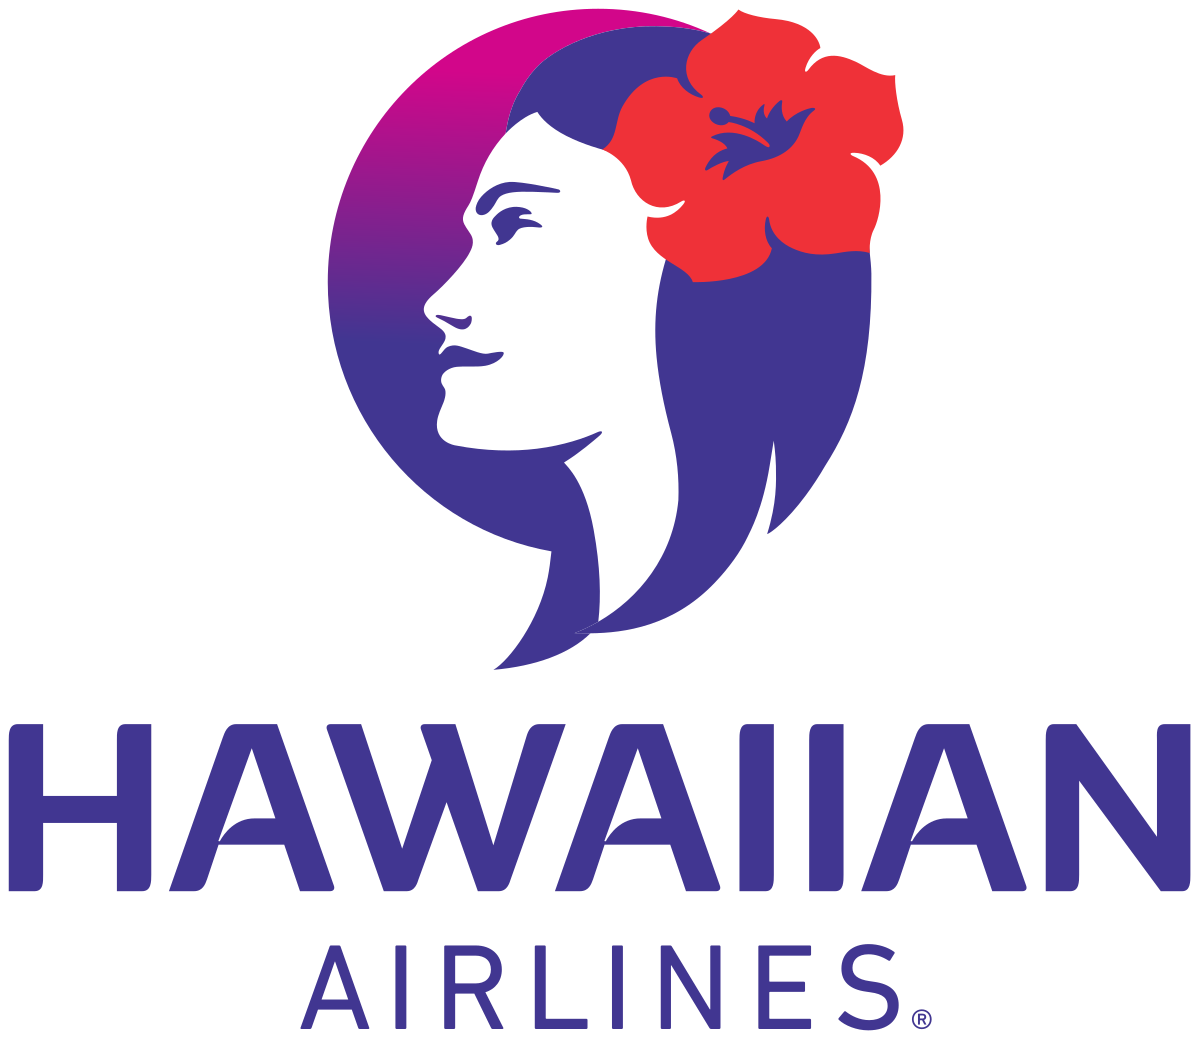 Japan airlines logo clipart clip black and white Hawaiian Airlines - Wikipedia clip black and white